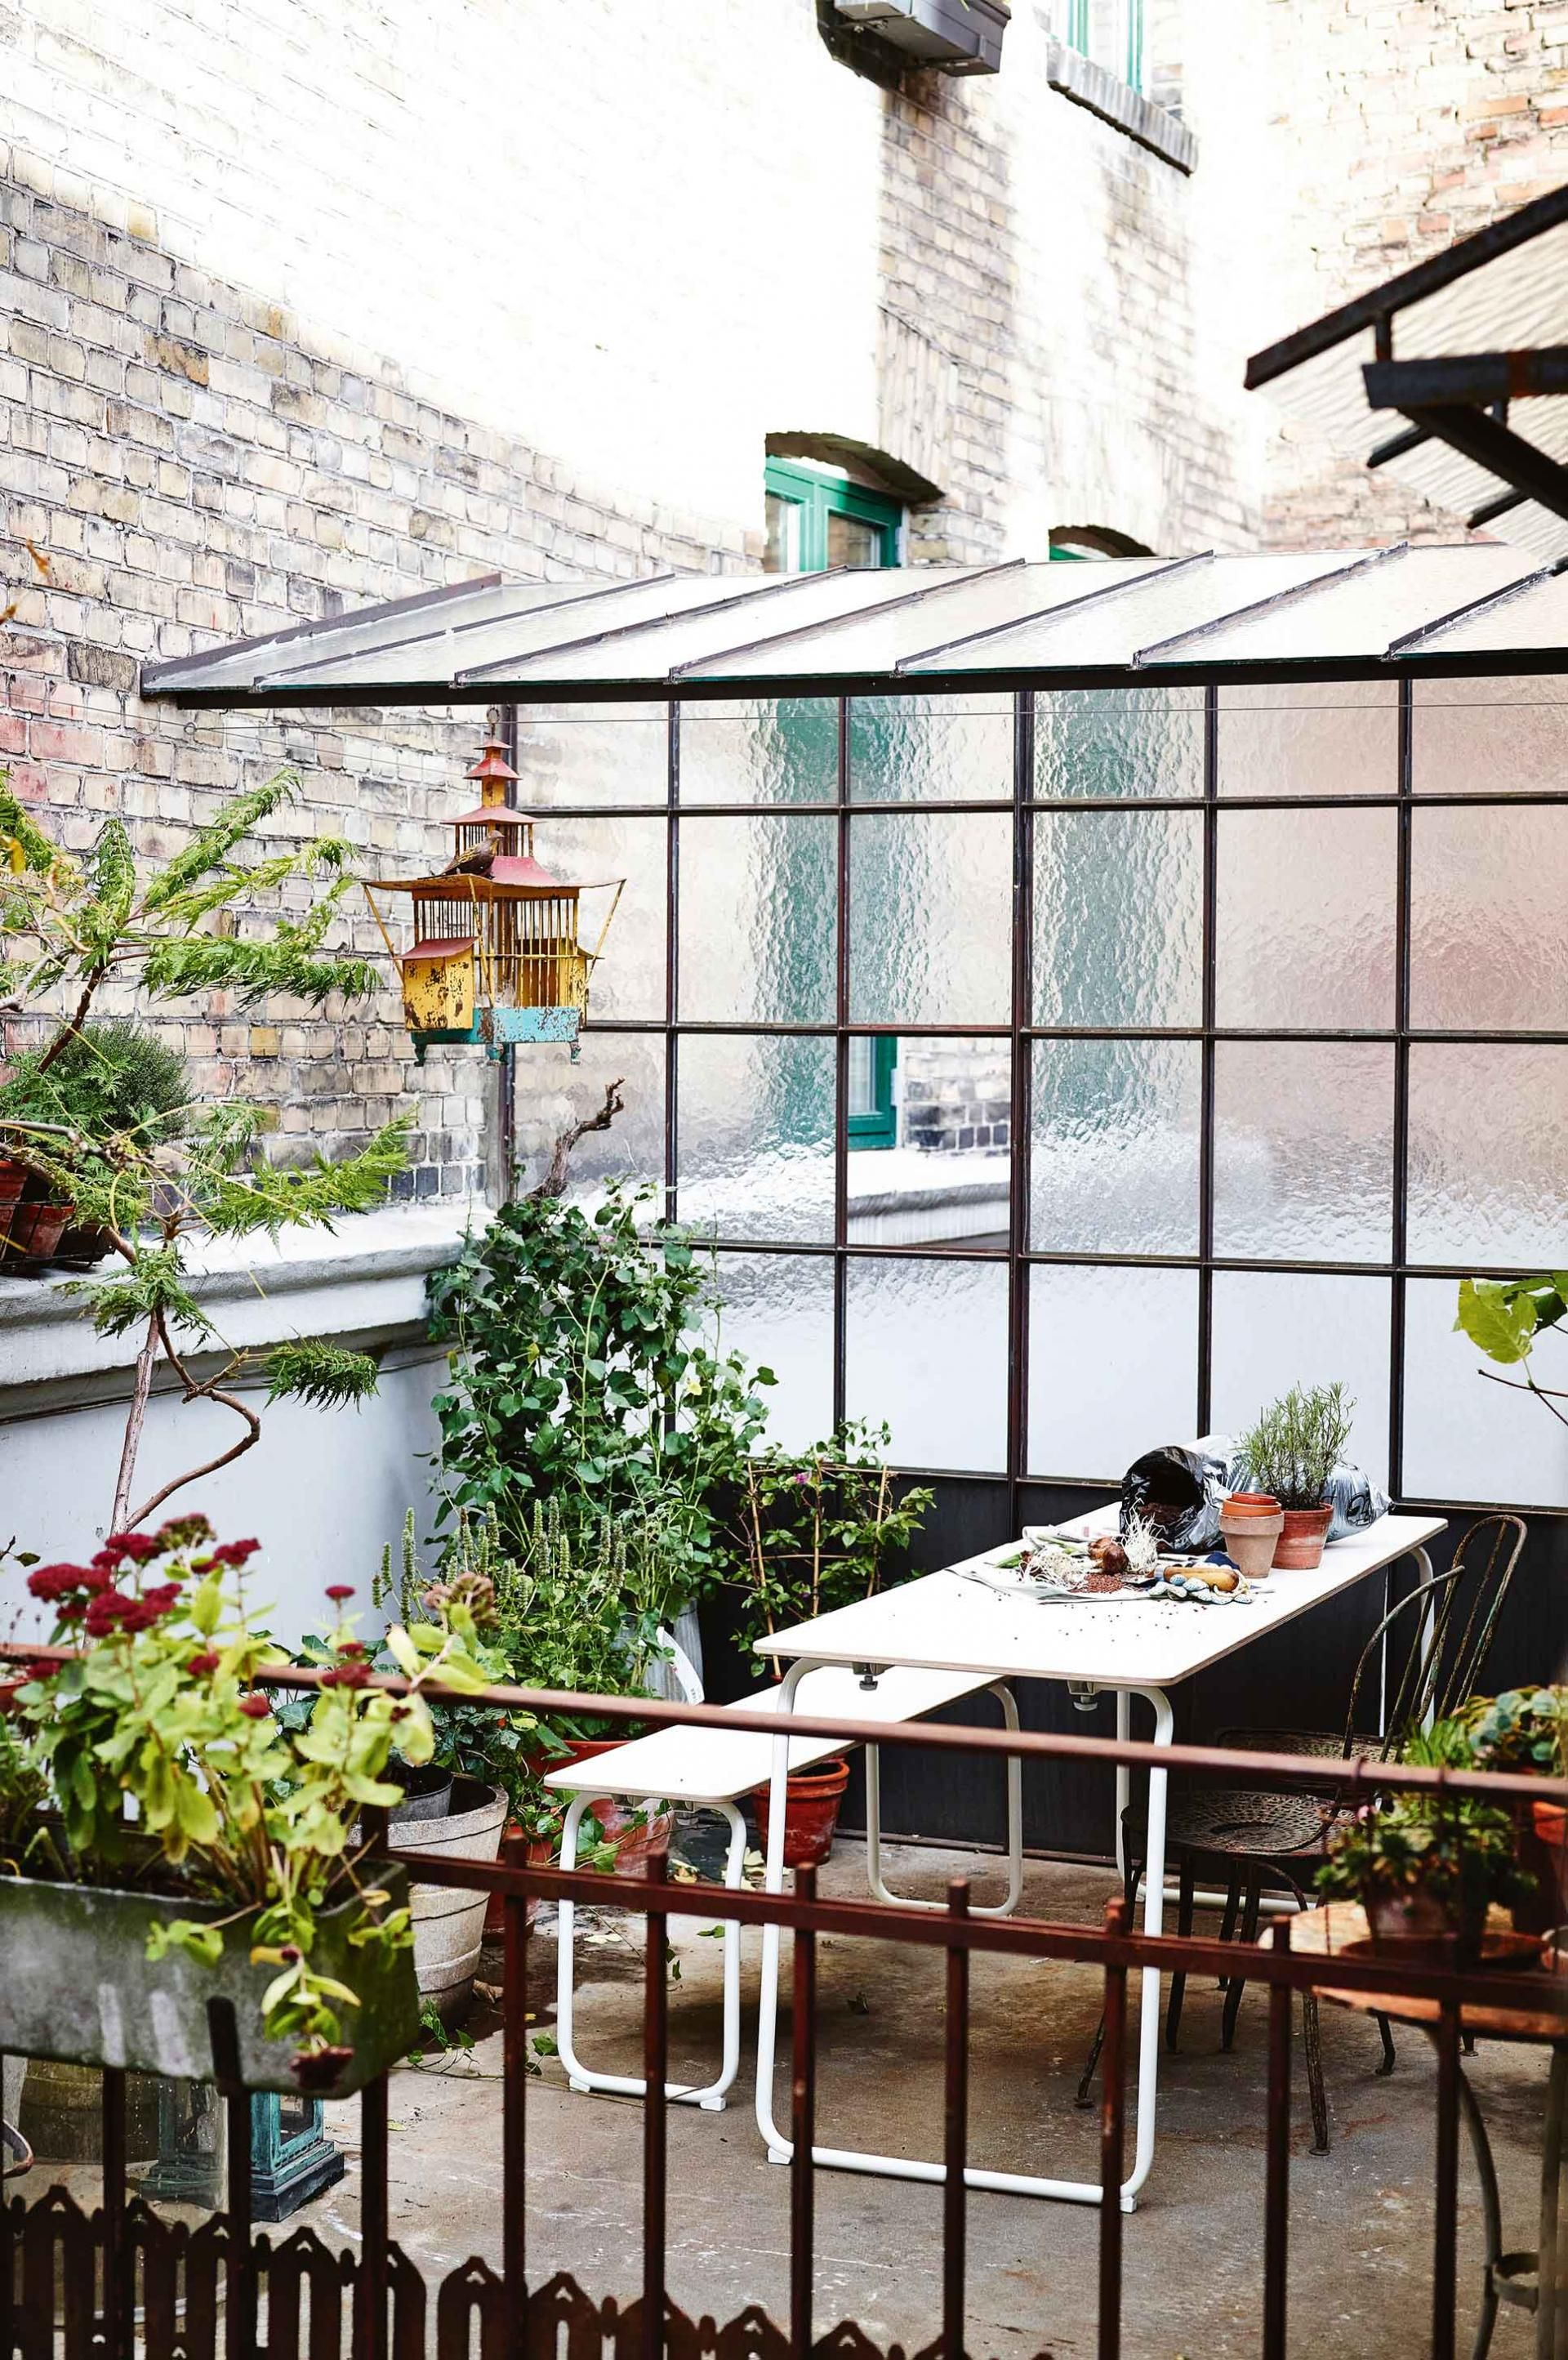 Rooftop terraces we'd like to escape to. Image courtesy of @IKEA_Australia.